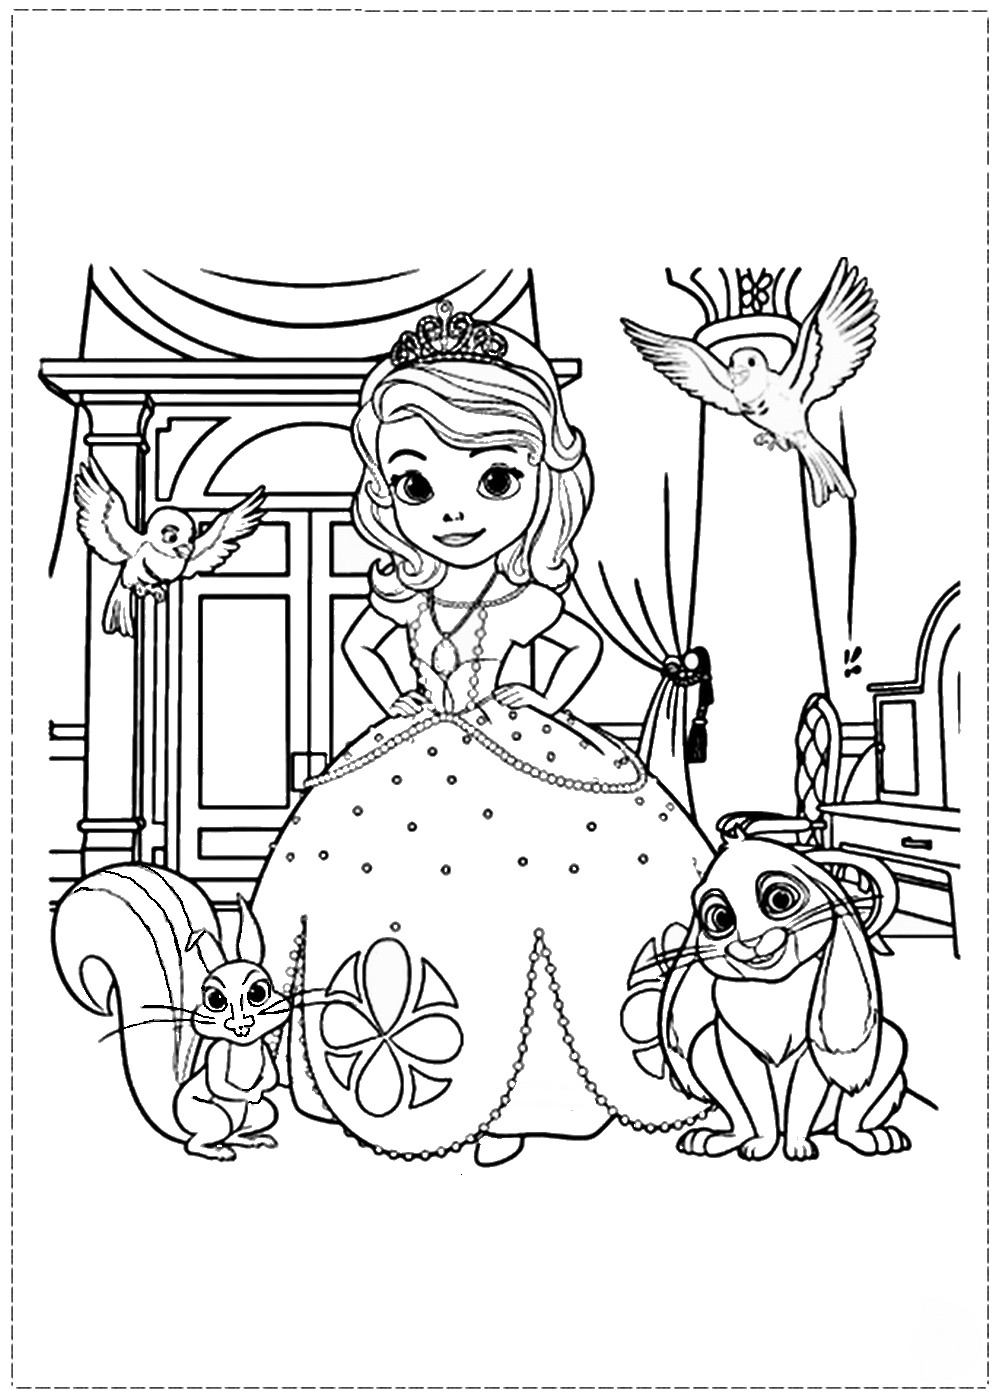 picture sofia the first princess sofia drawing at paintingvalleycom explore the first sofia picture